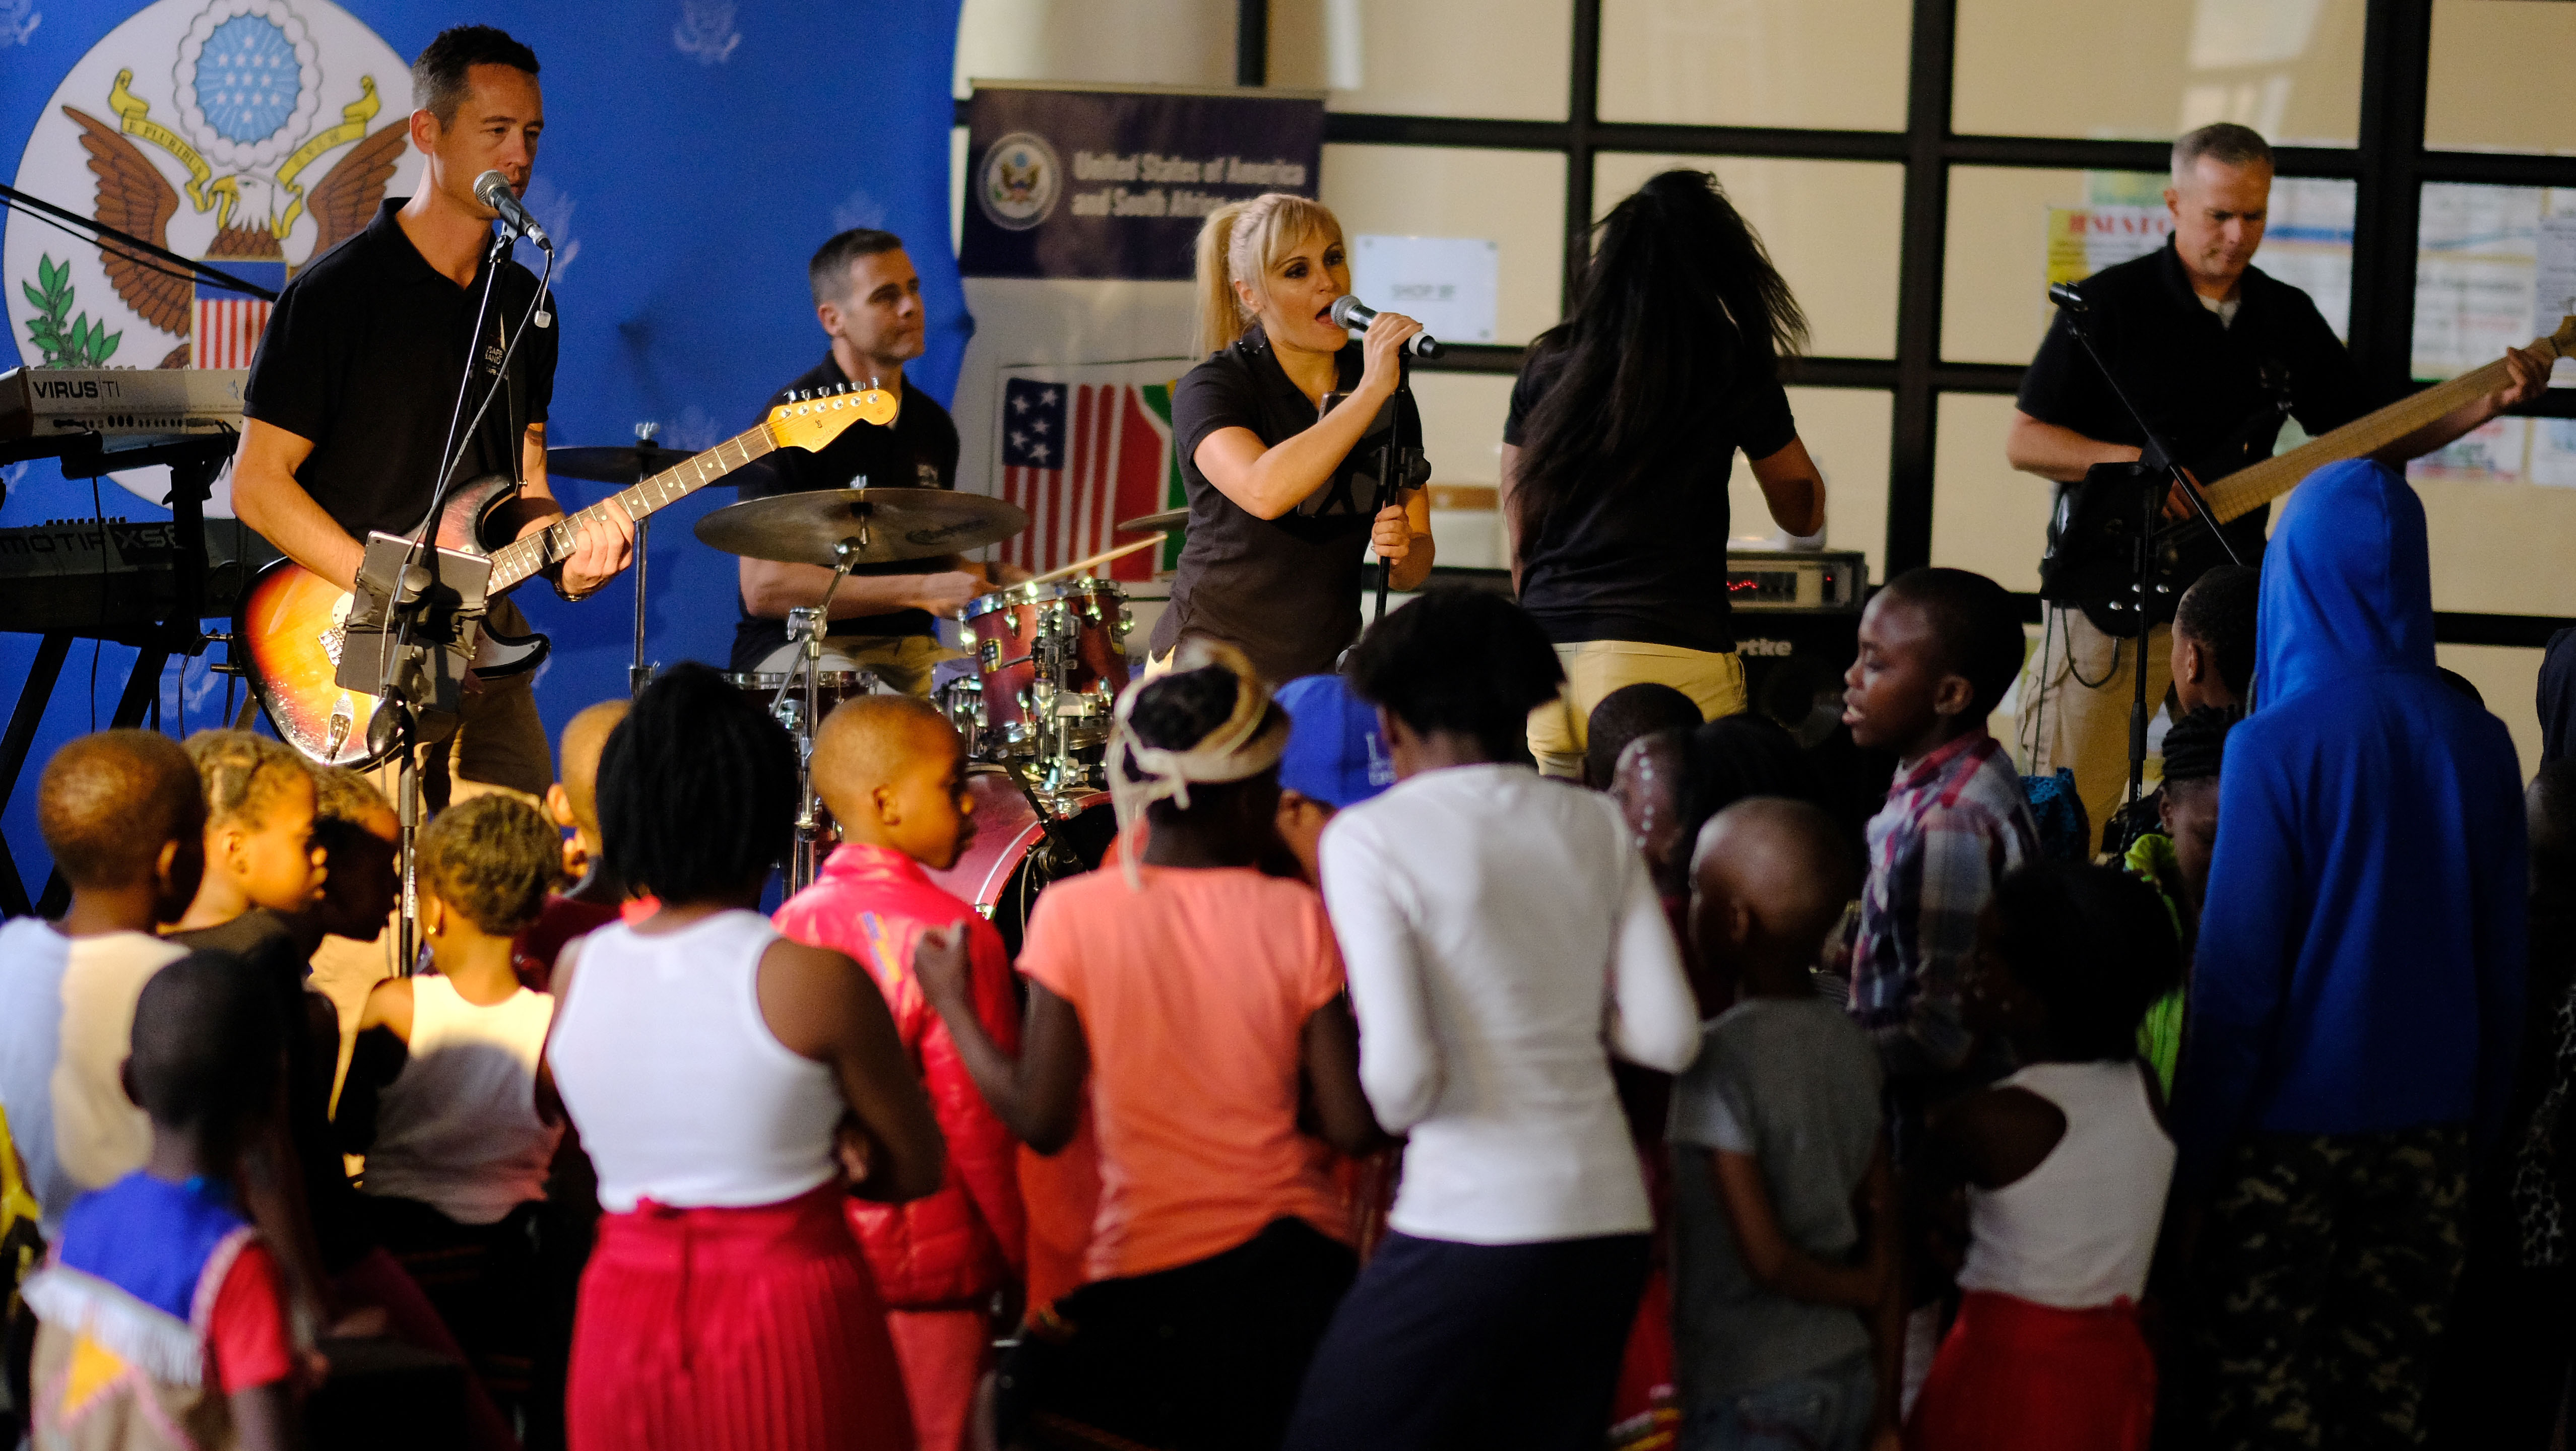 Members of the United States Air Forces in Europe- Air Forces Africa band  Touch 'n Go perform a concert for children at Ponte City in Johannesburg, South Africa, September 21, 2018. The band's performance provides a unique opportunity for the U.S. to develop strong connections with its African partners and their communities. (US Army Photo by SSG Jeffery Sandstrum)